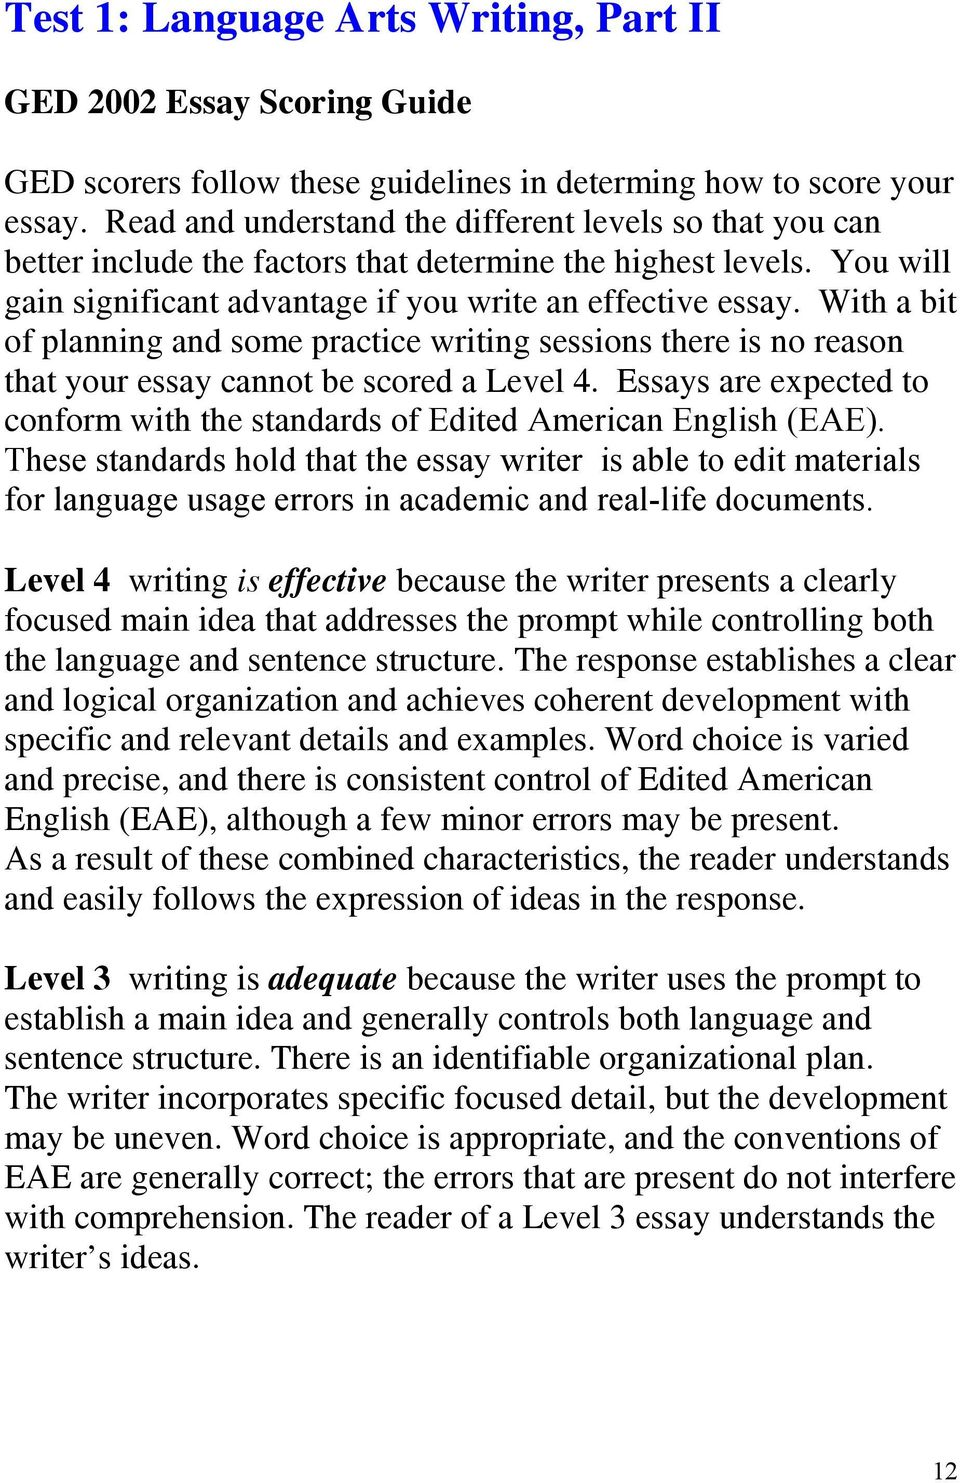 writing a ged essay Help me on my math homework help writing a ged essay cite dissertation proquest andreas uphaus dissertation.